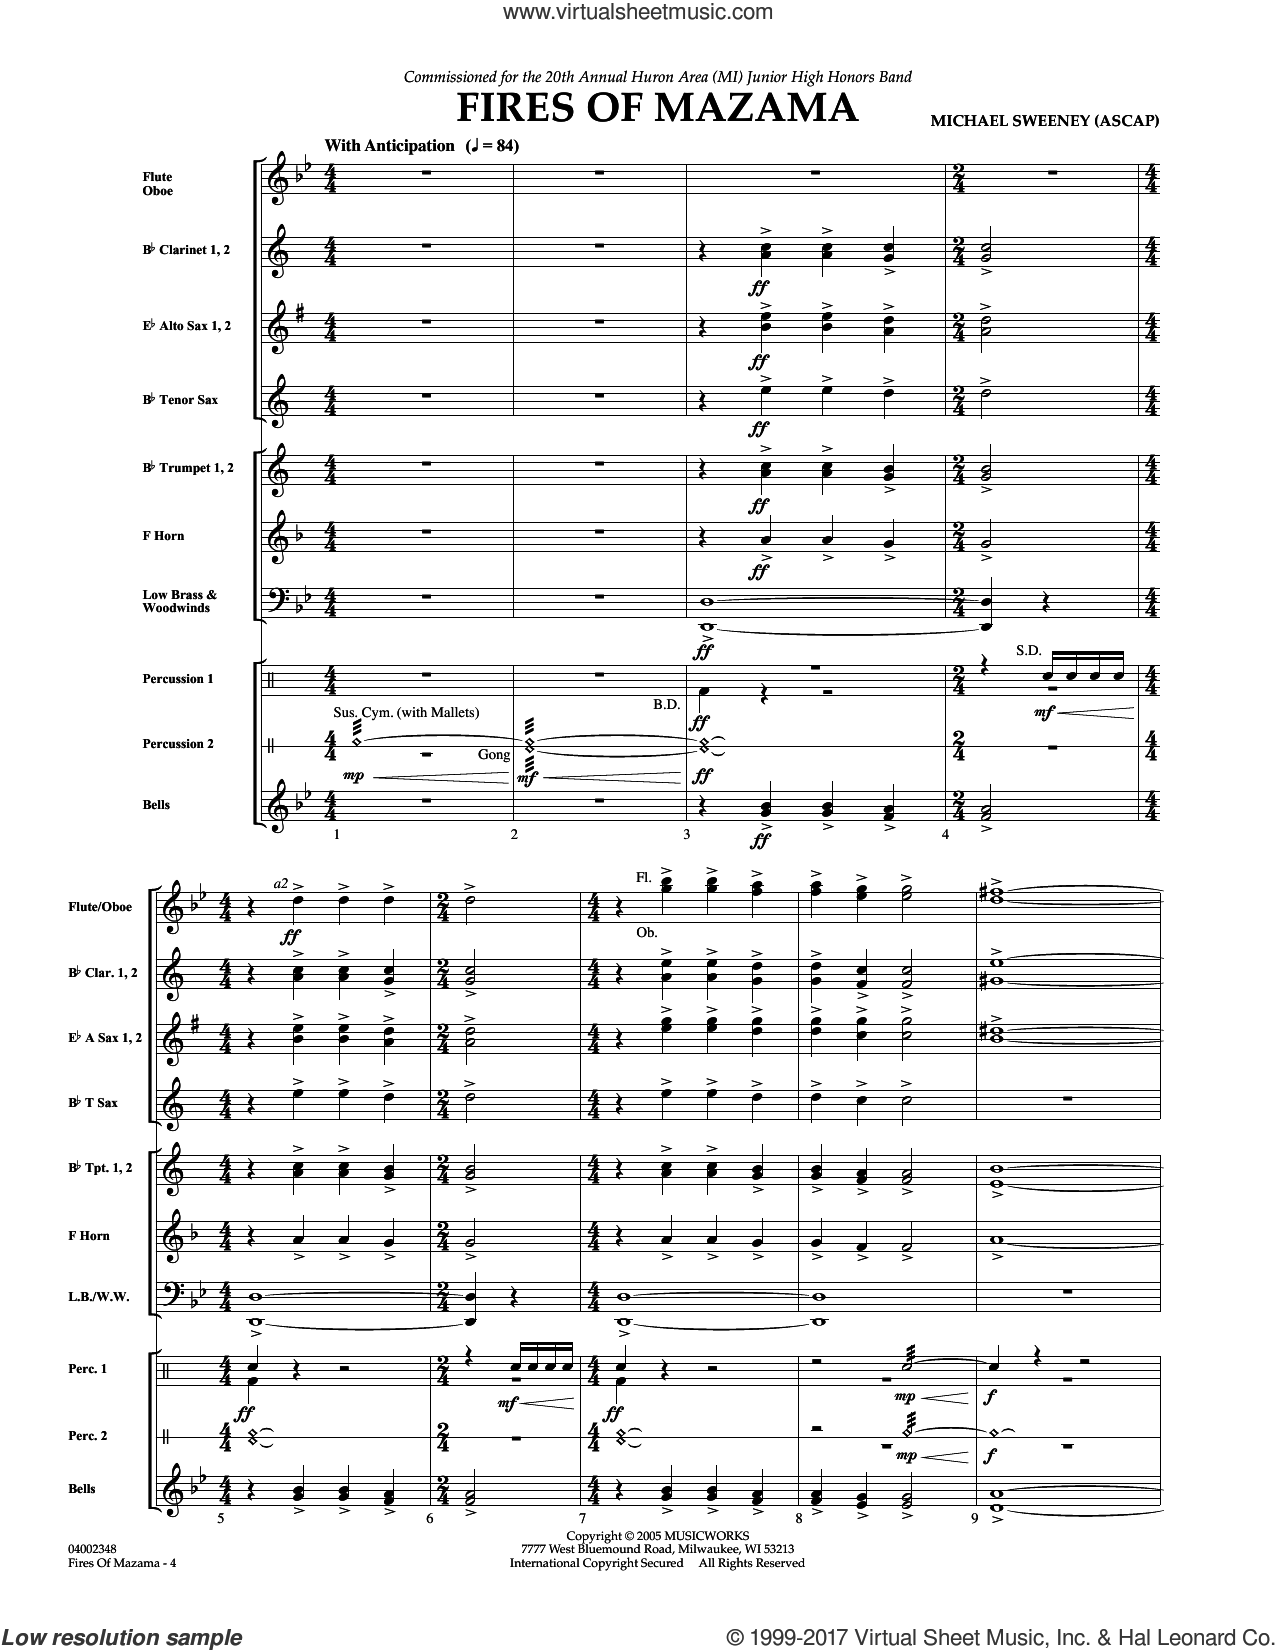 Fires of Mazama (COMPLETE) sheet music for concert band by Michael Sweeney, intermediate skill level